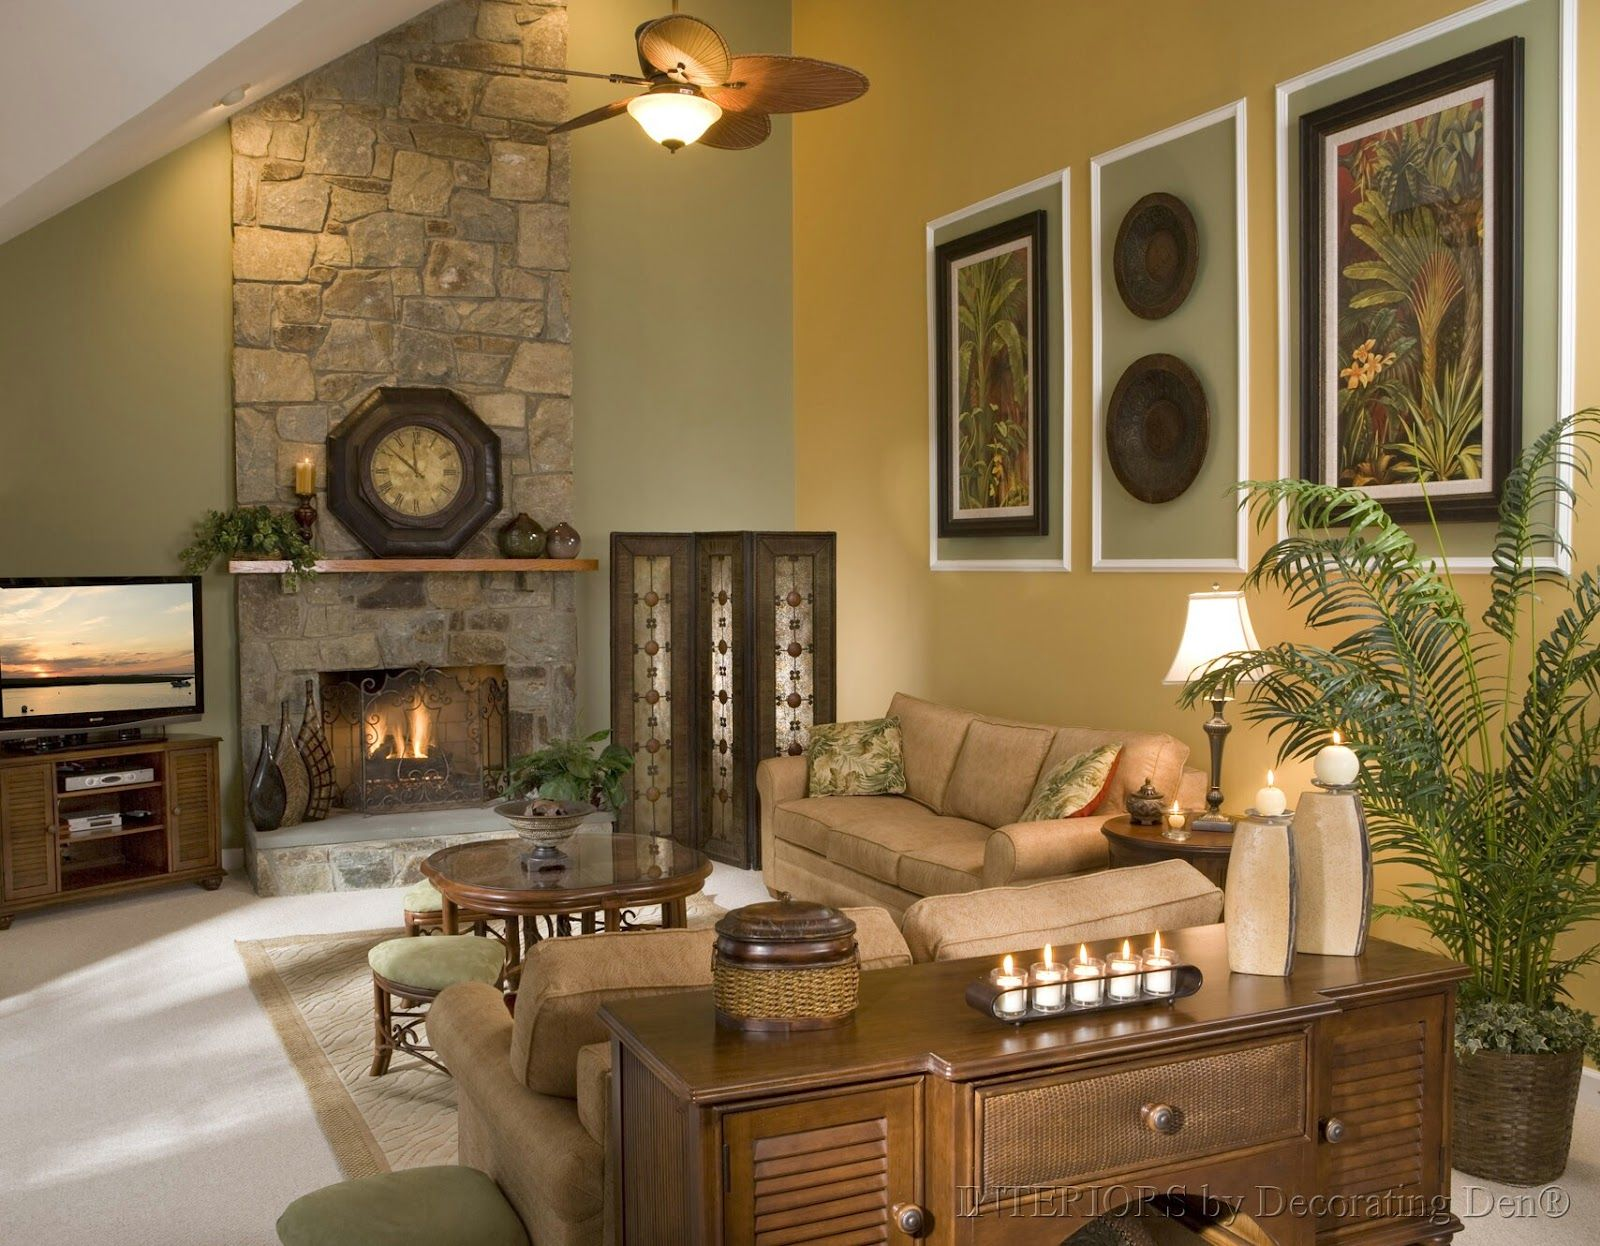 Decorating a small split level home with vaulted ceiling - Ideas decorating living room walls ...